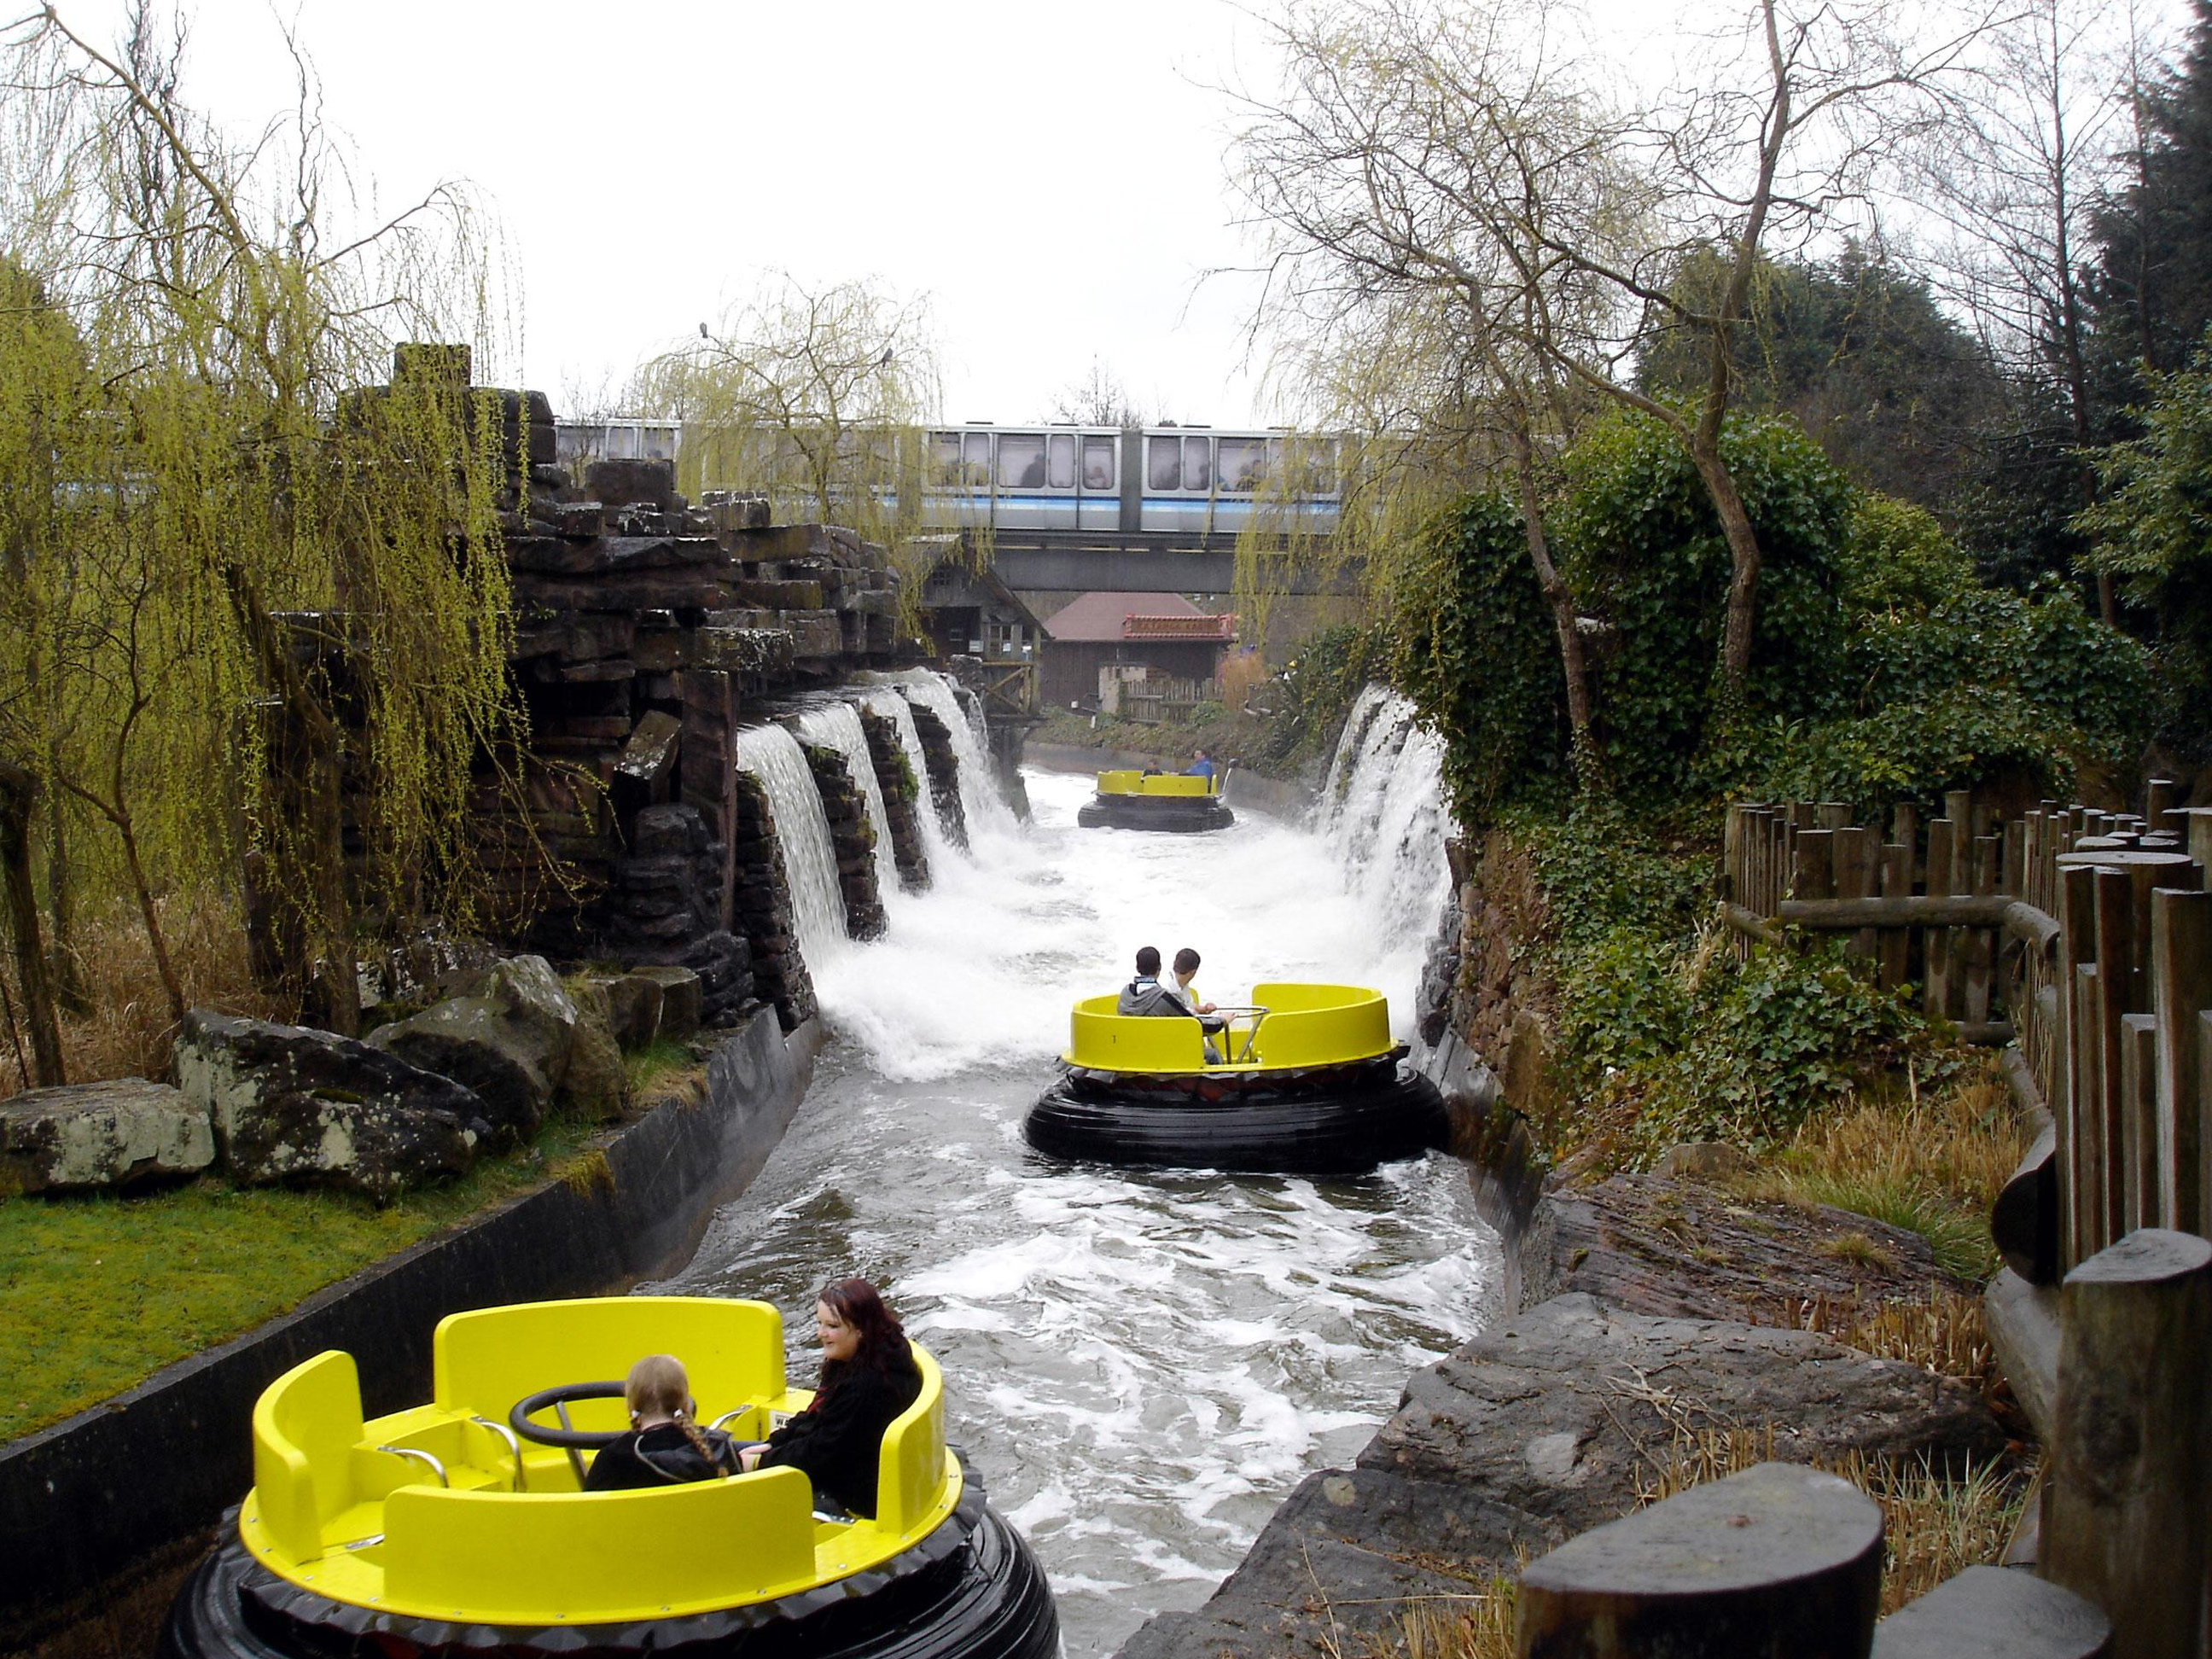 Secret behind the thrill: Water systems managing the worlds most popular water rides.